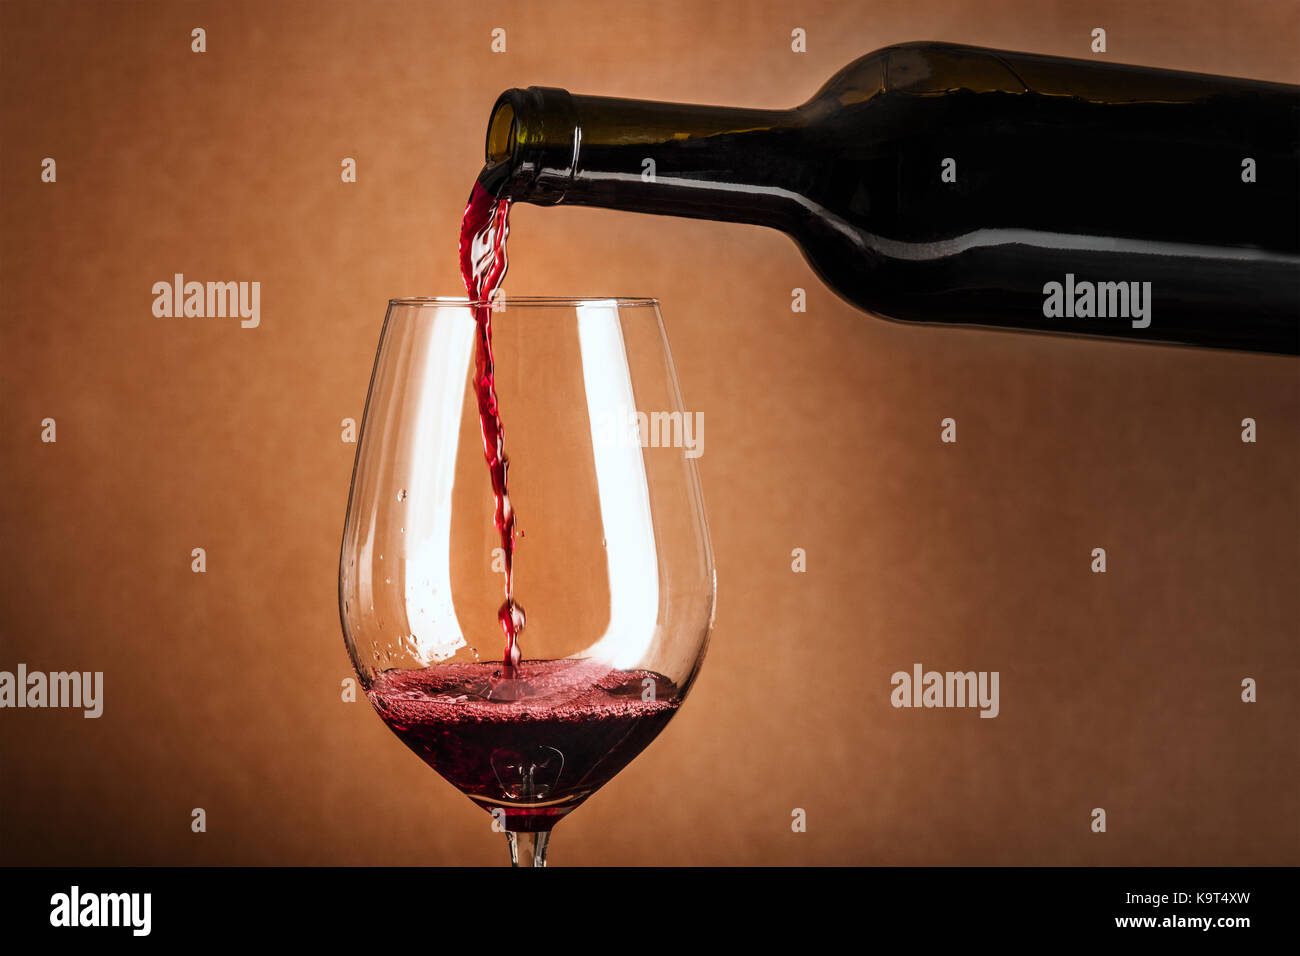 Red wine poured into glass from bottle - Stock Image